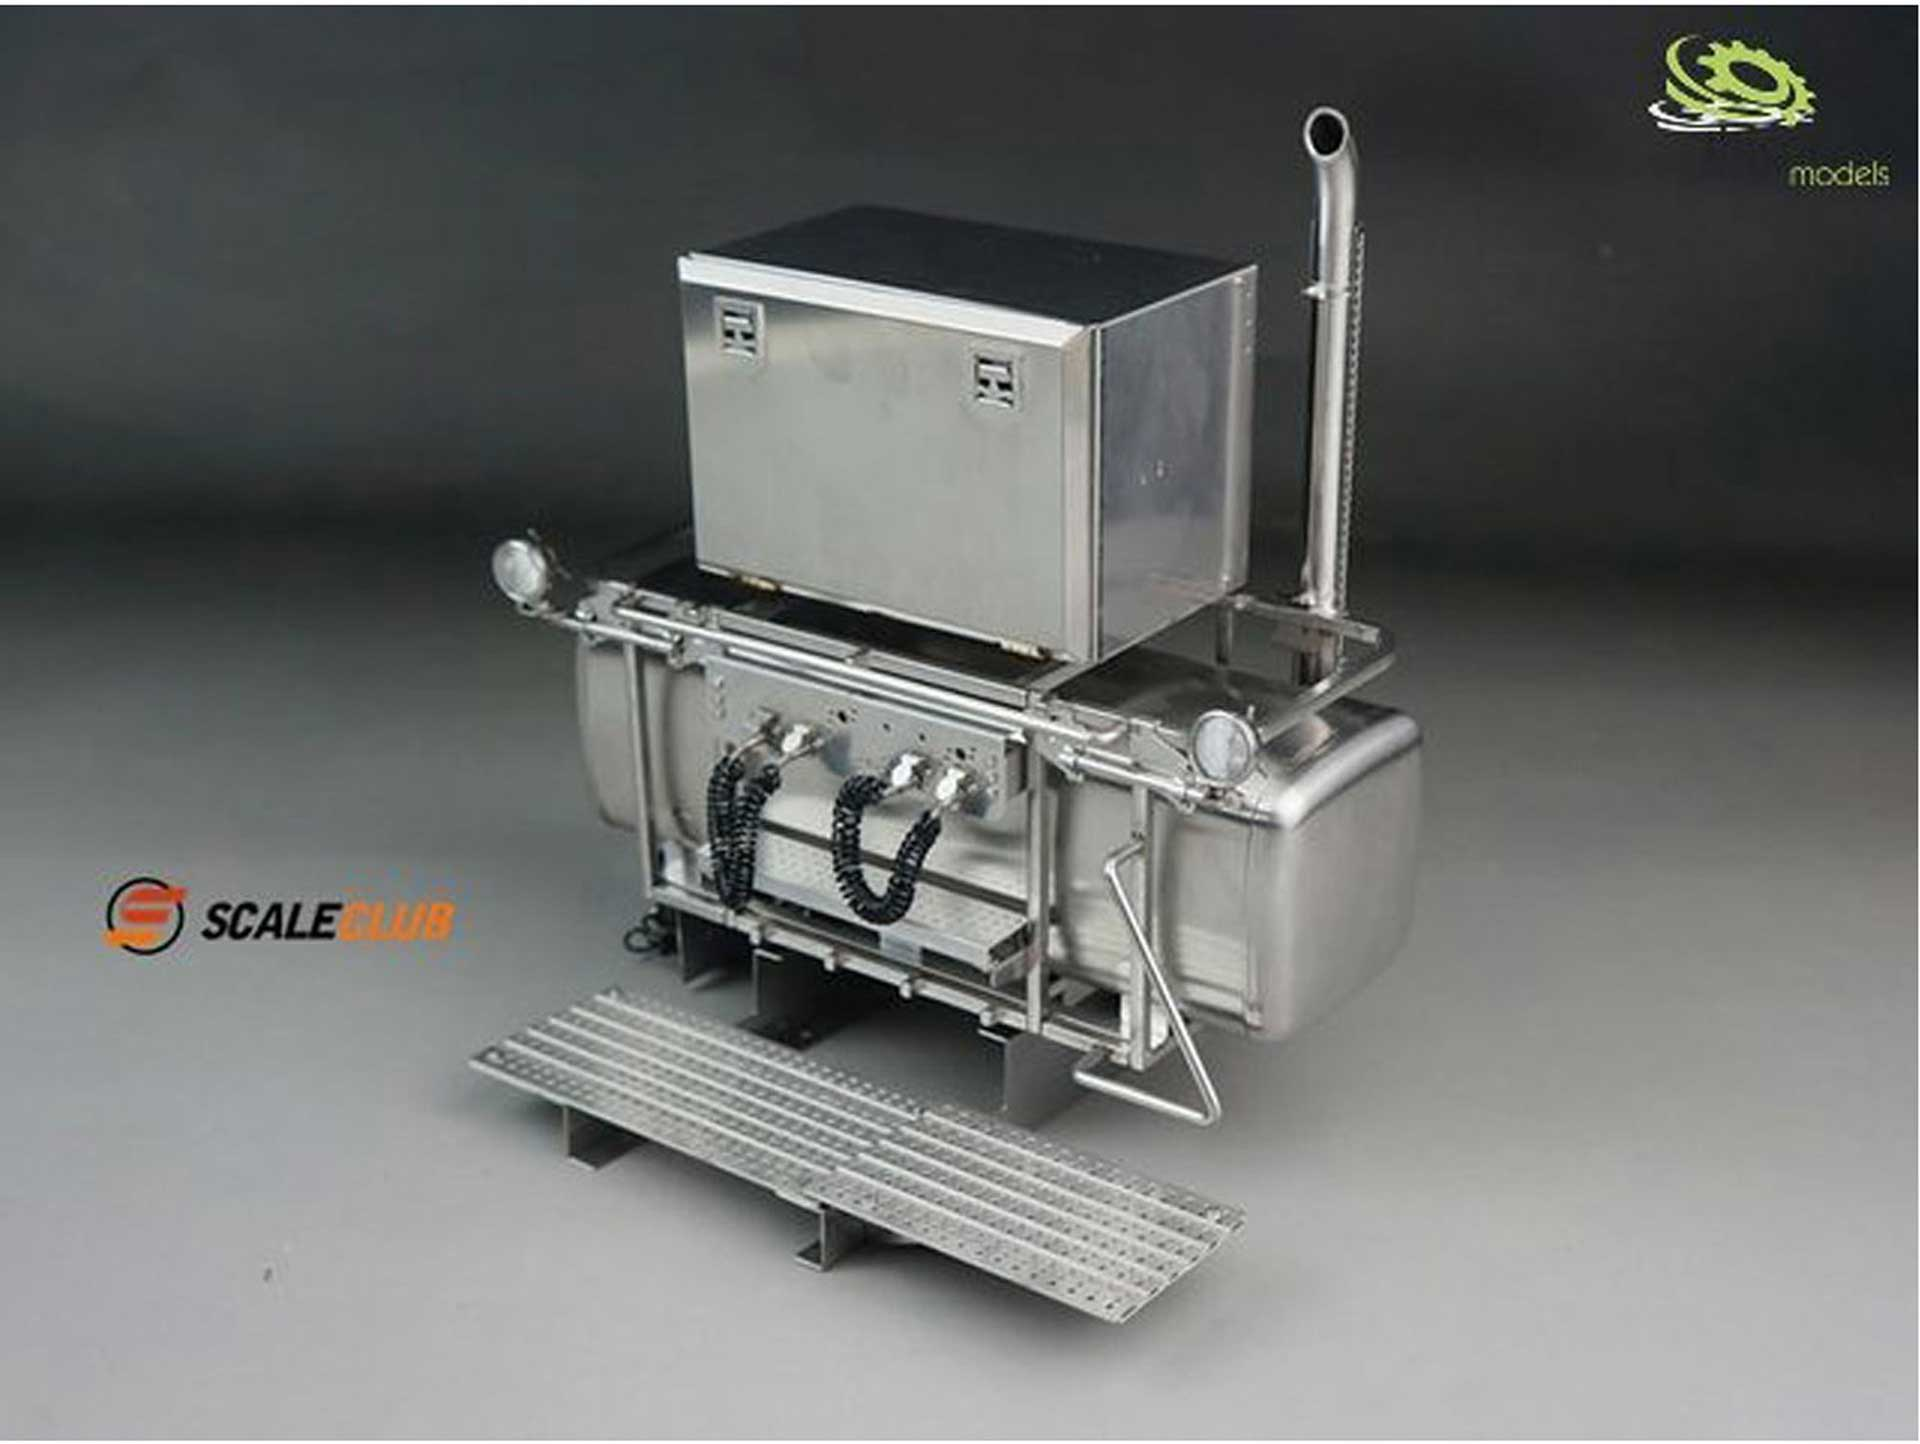 SCALE CLUB HEAVY LOAD TOWER WITH HEADLIGHTS AND BOX V2A STEEL 1/14